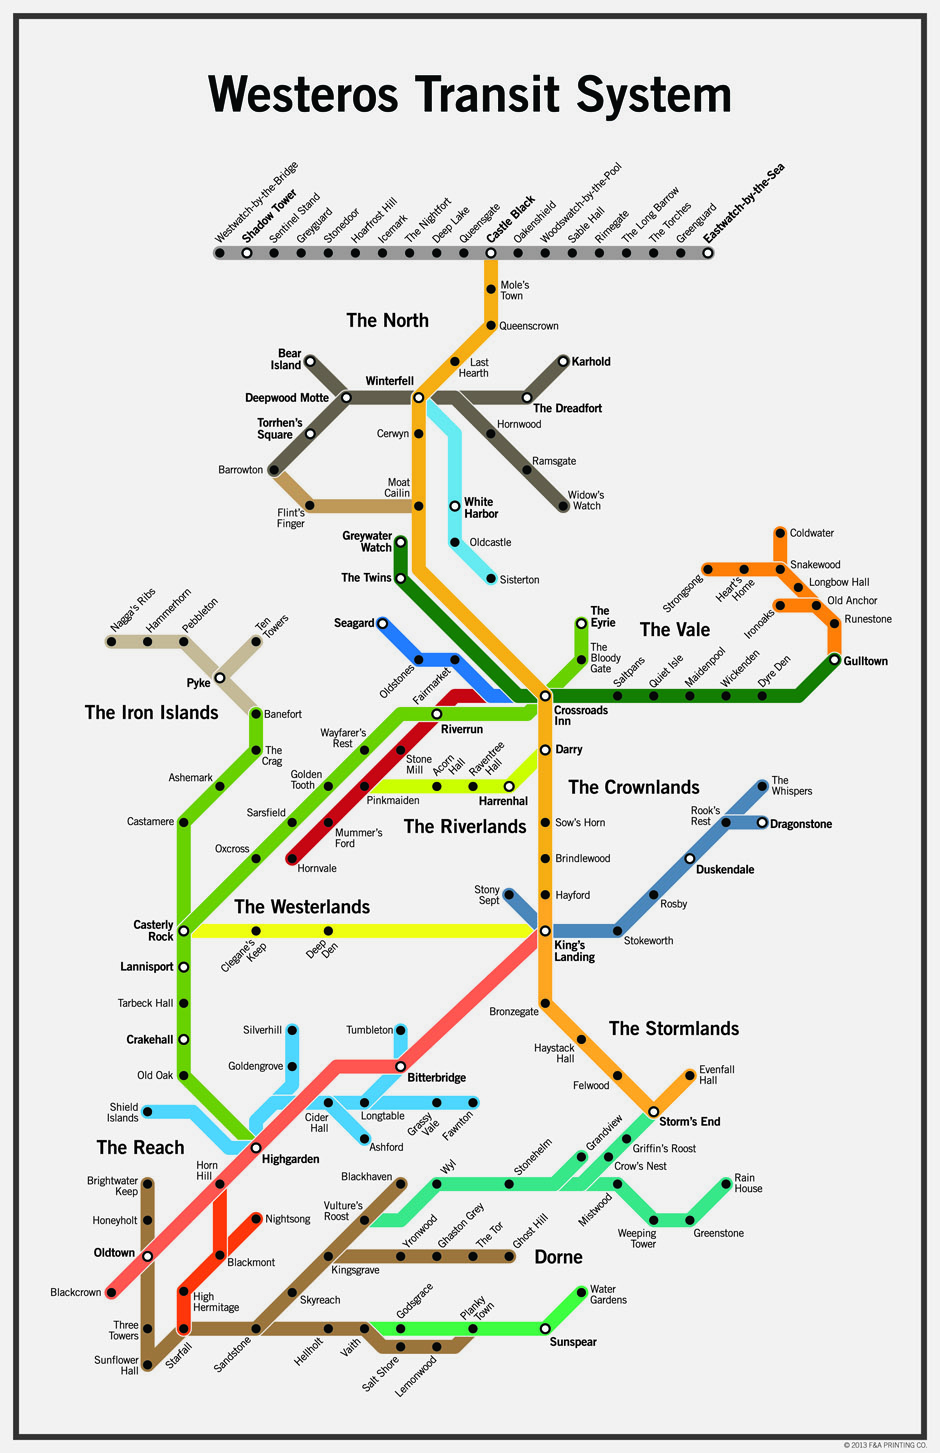 Game of Thrones Could Really Use a Public Transit System